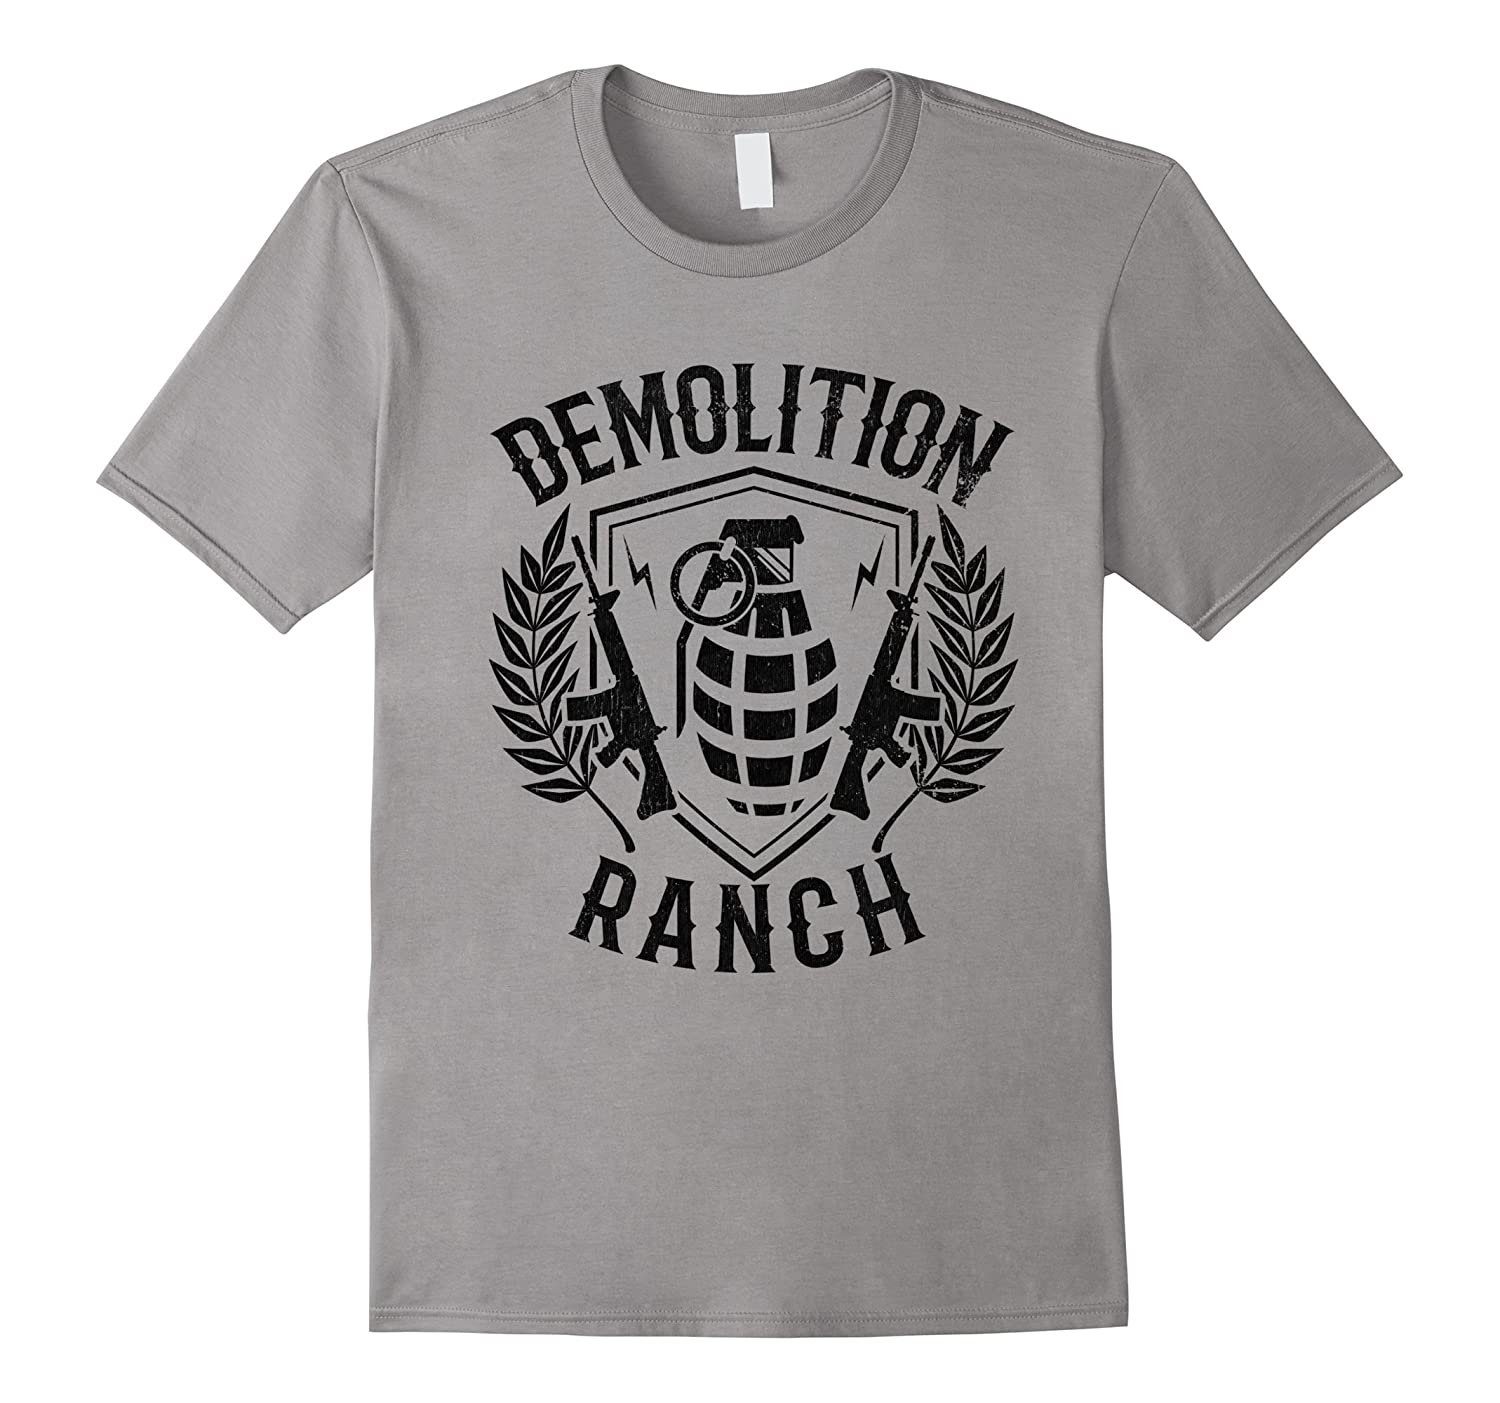 demolition ranch ar15 grenade vintage tshirt art artvinatee